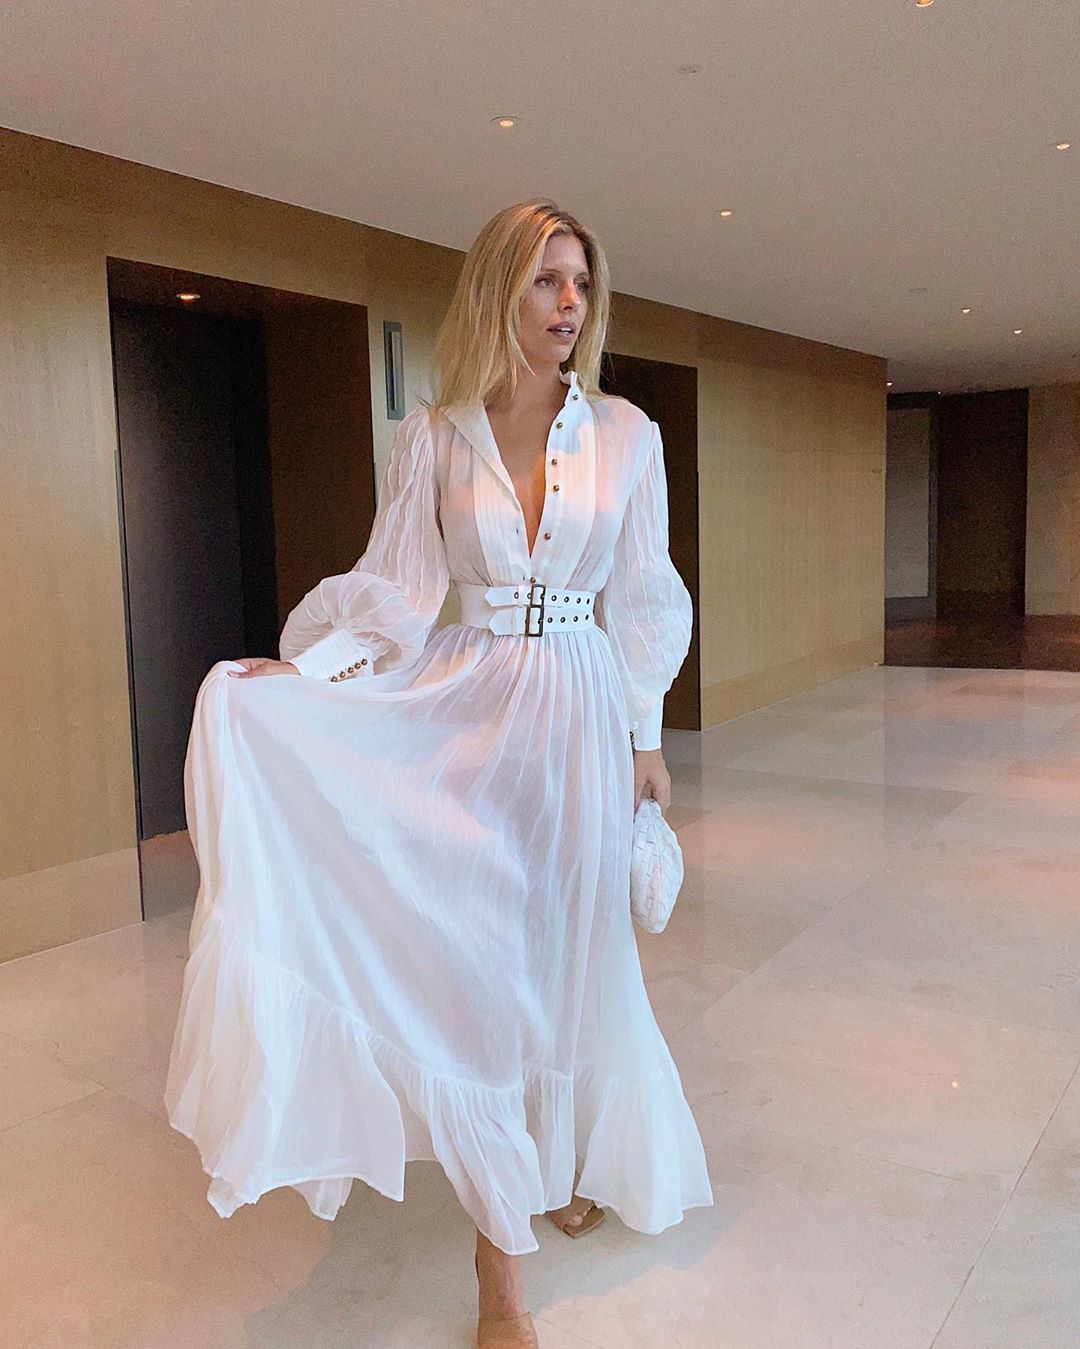 Natasha Oakley donning a See through white Leo and Lin maxi dress with a see-through linen material, puffy sleeves, wide cuffs, button front, cinched waist and flared hem